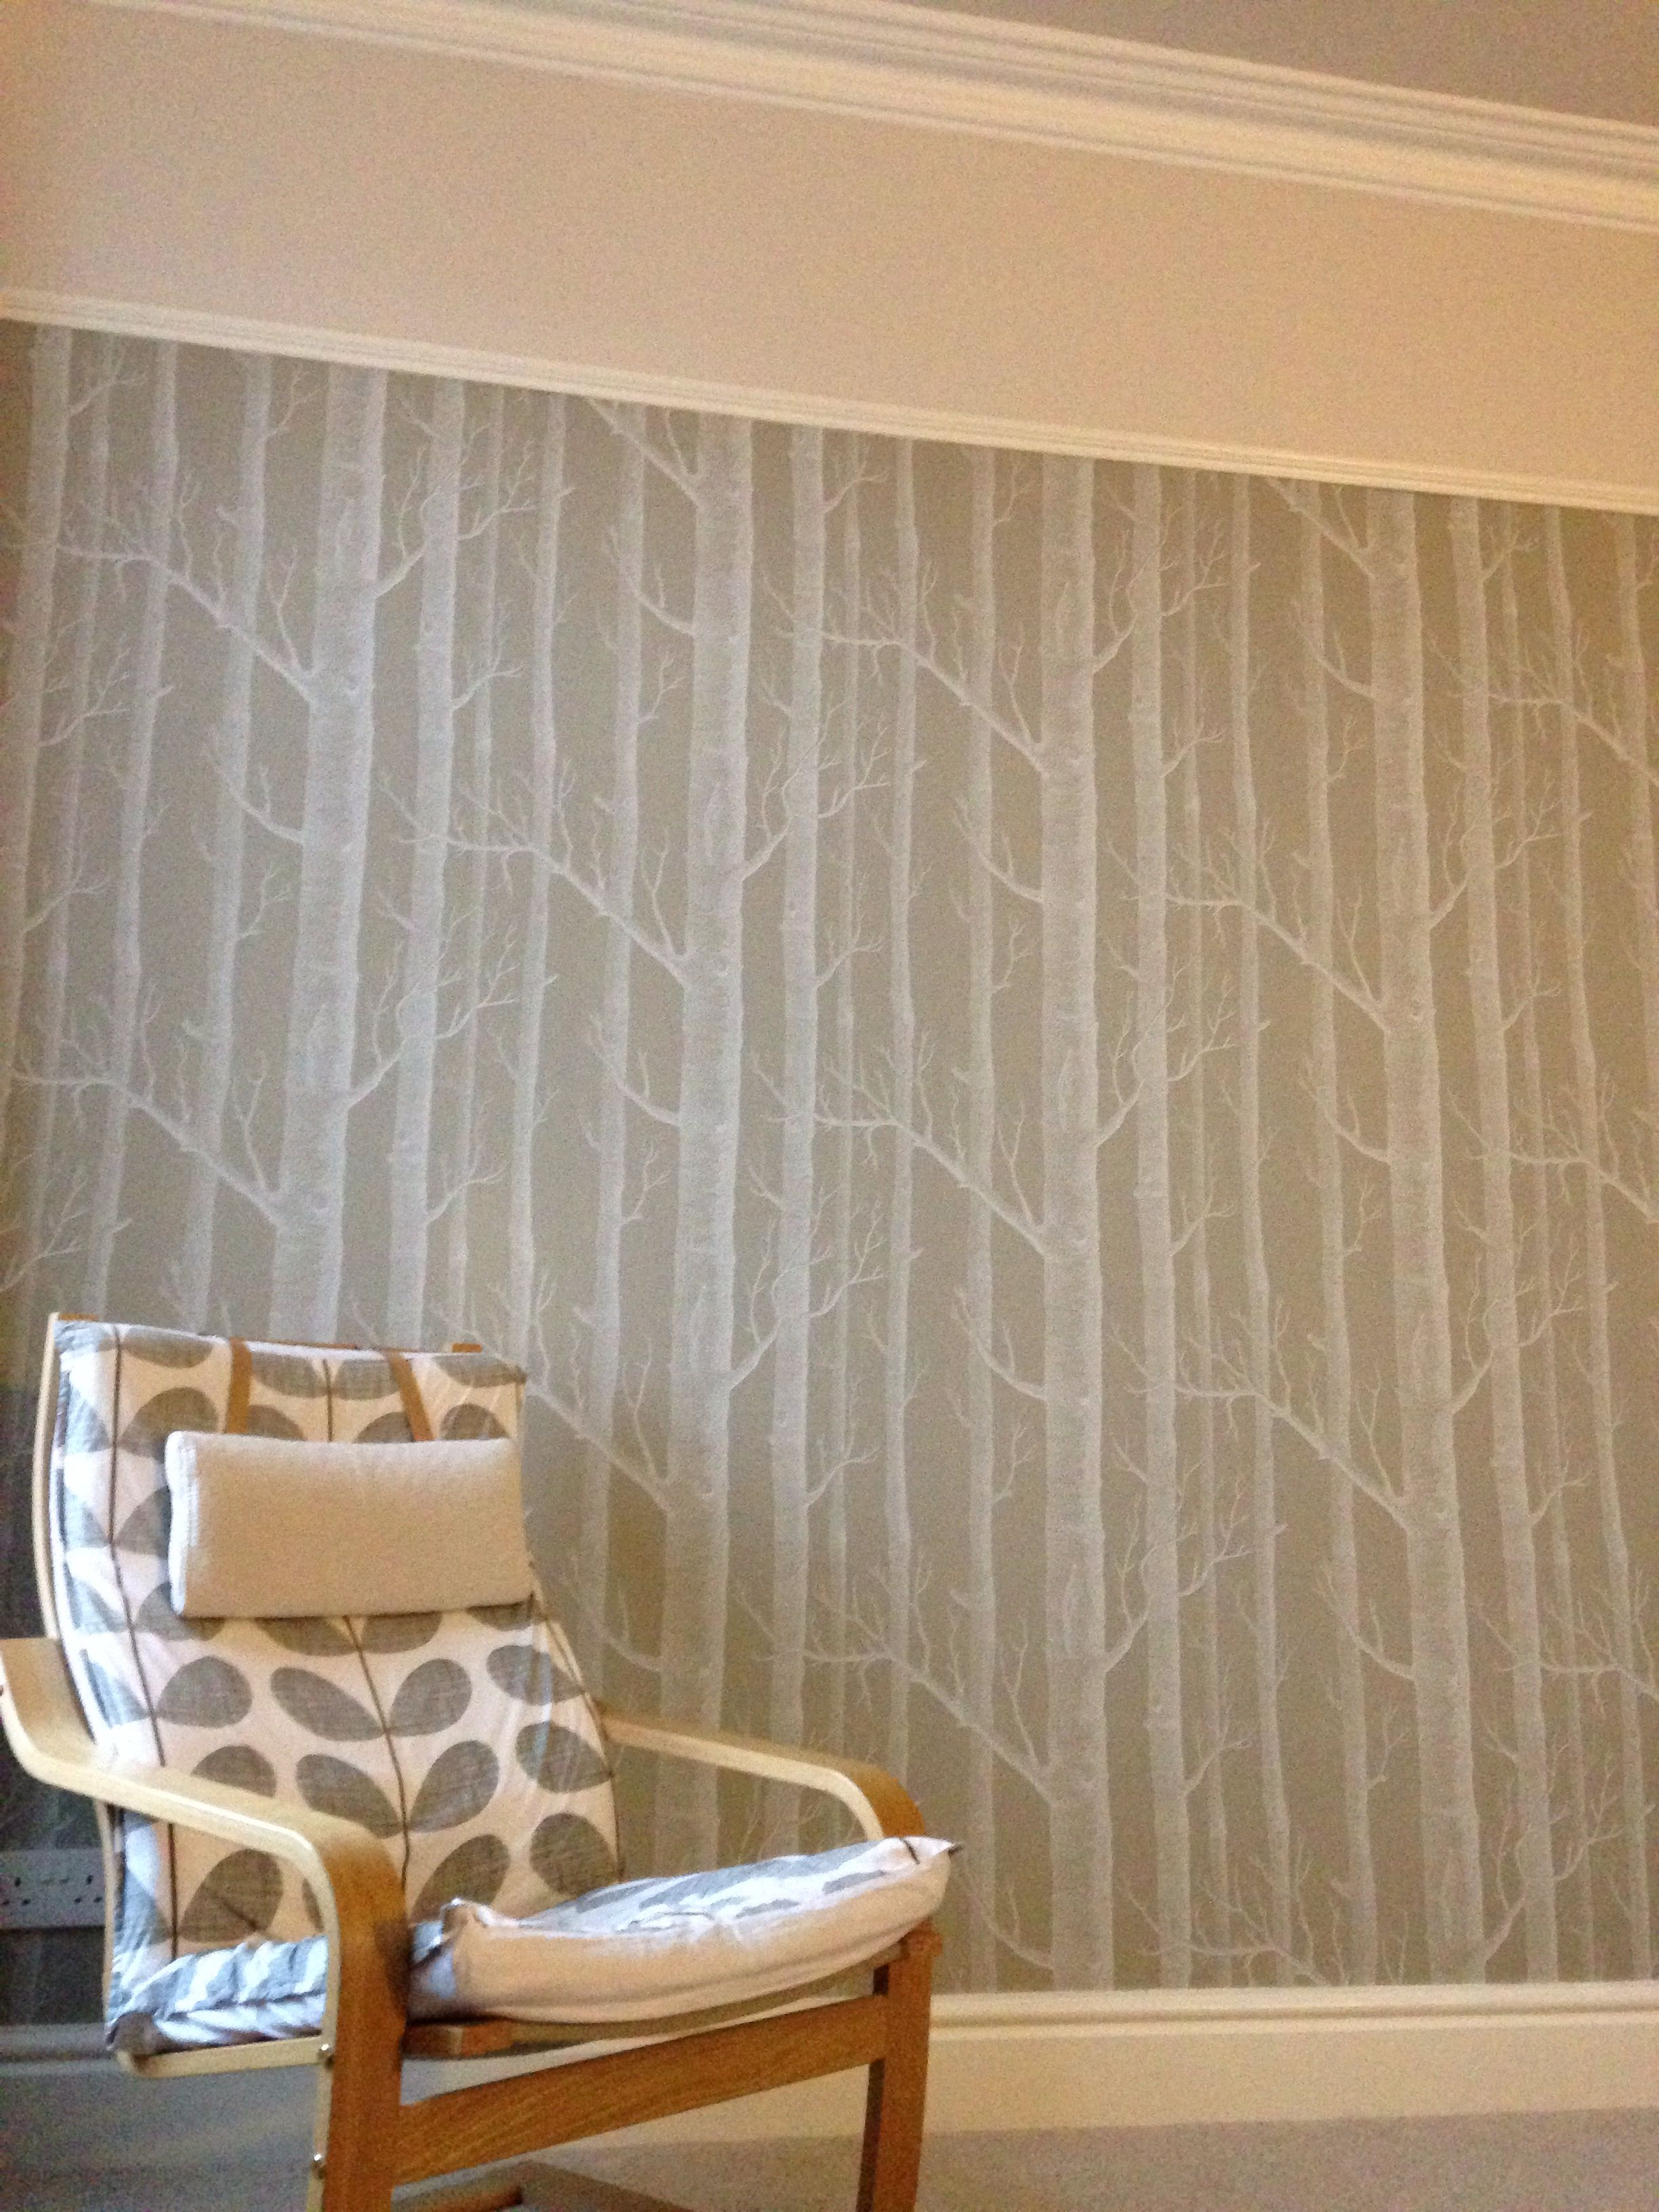 Tree Design Wallpaper Living Room: Our Bedroom, Trees Wallpaper And Just Walnut Dulux Paint